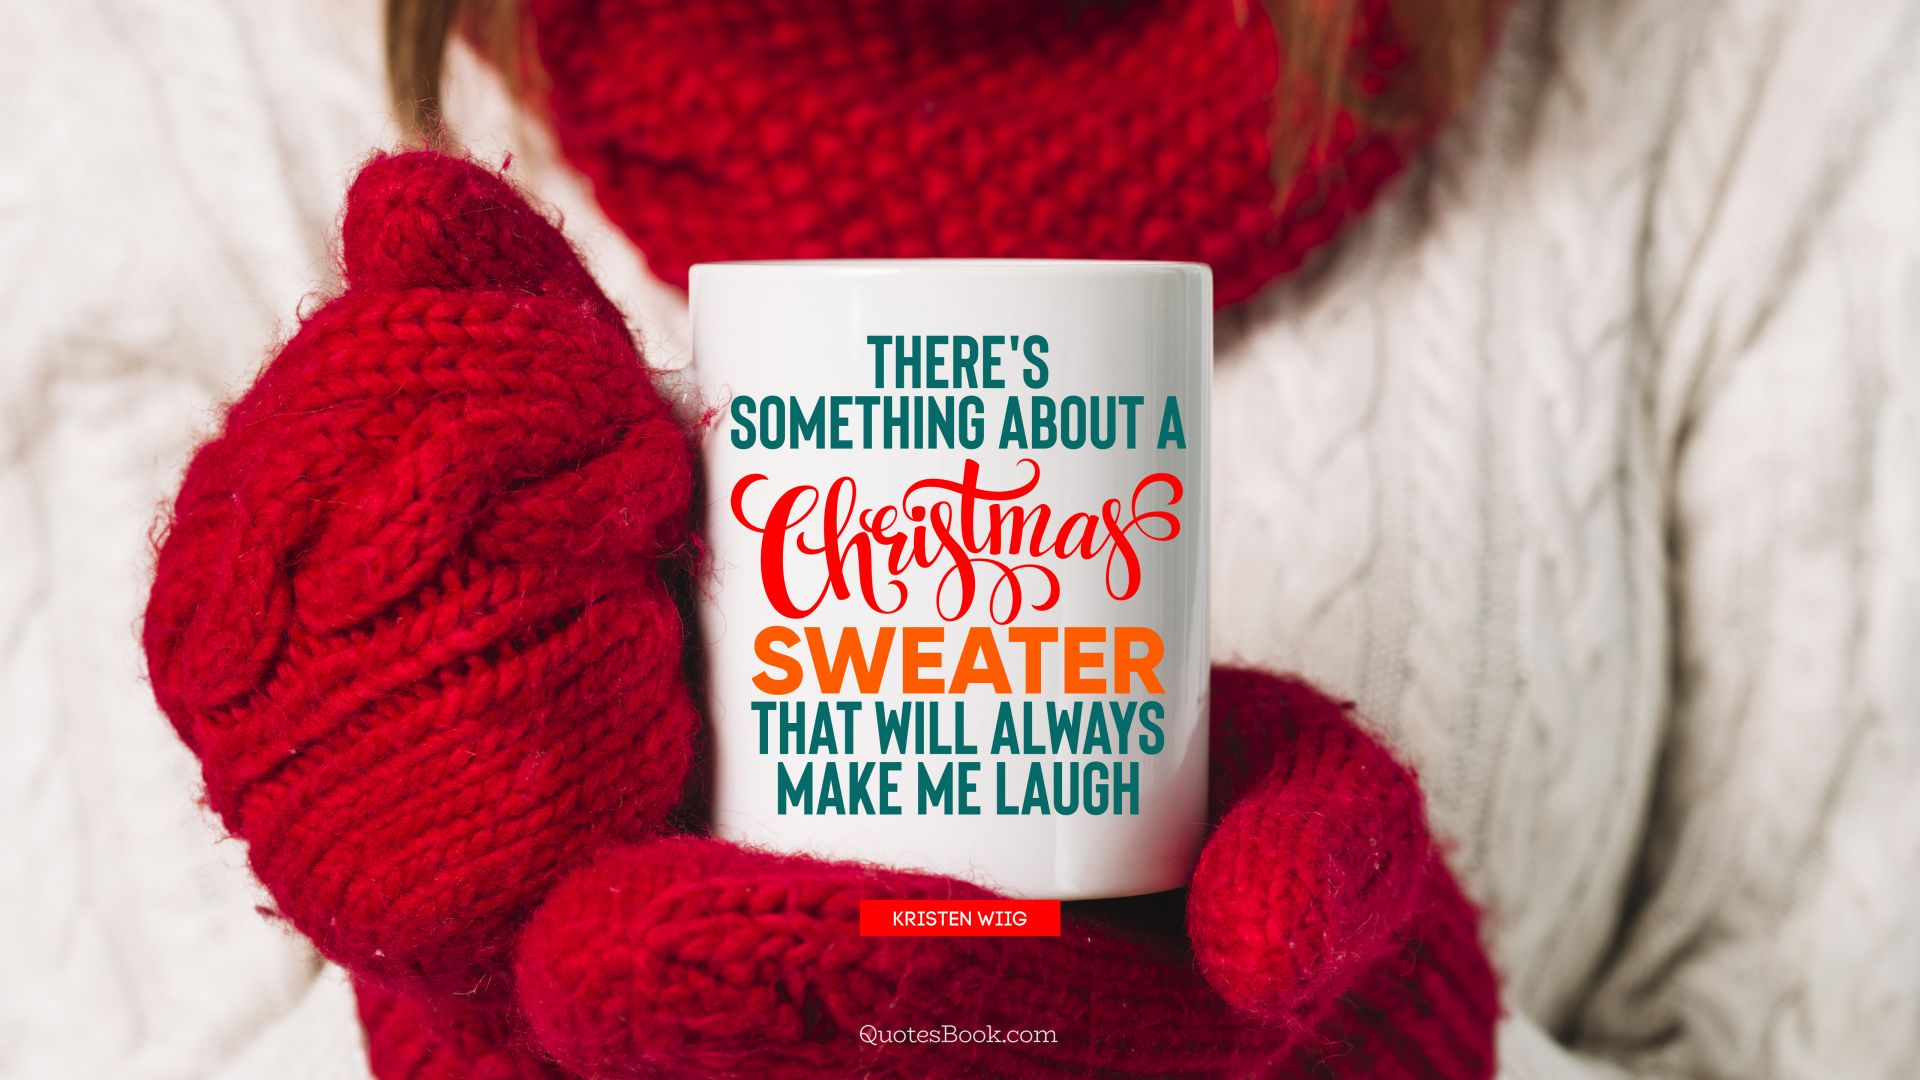 There's something about a Christmas sweater that will always make me laugh. - Quote by Kristen Wiig